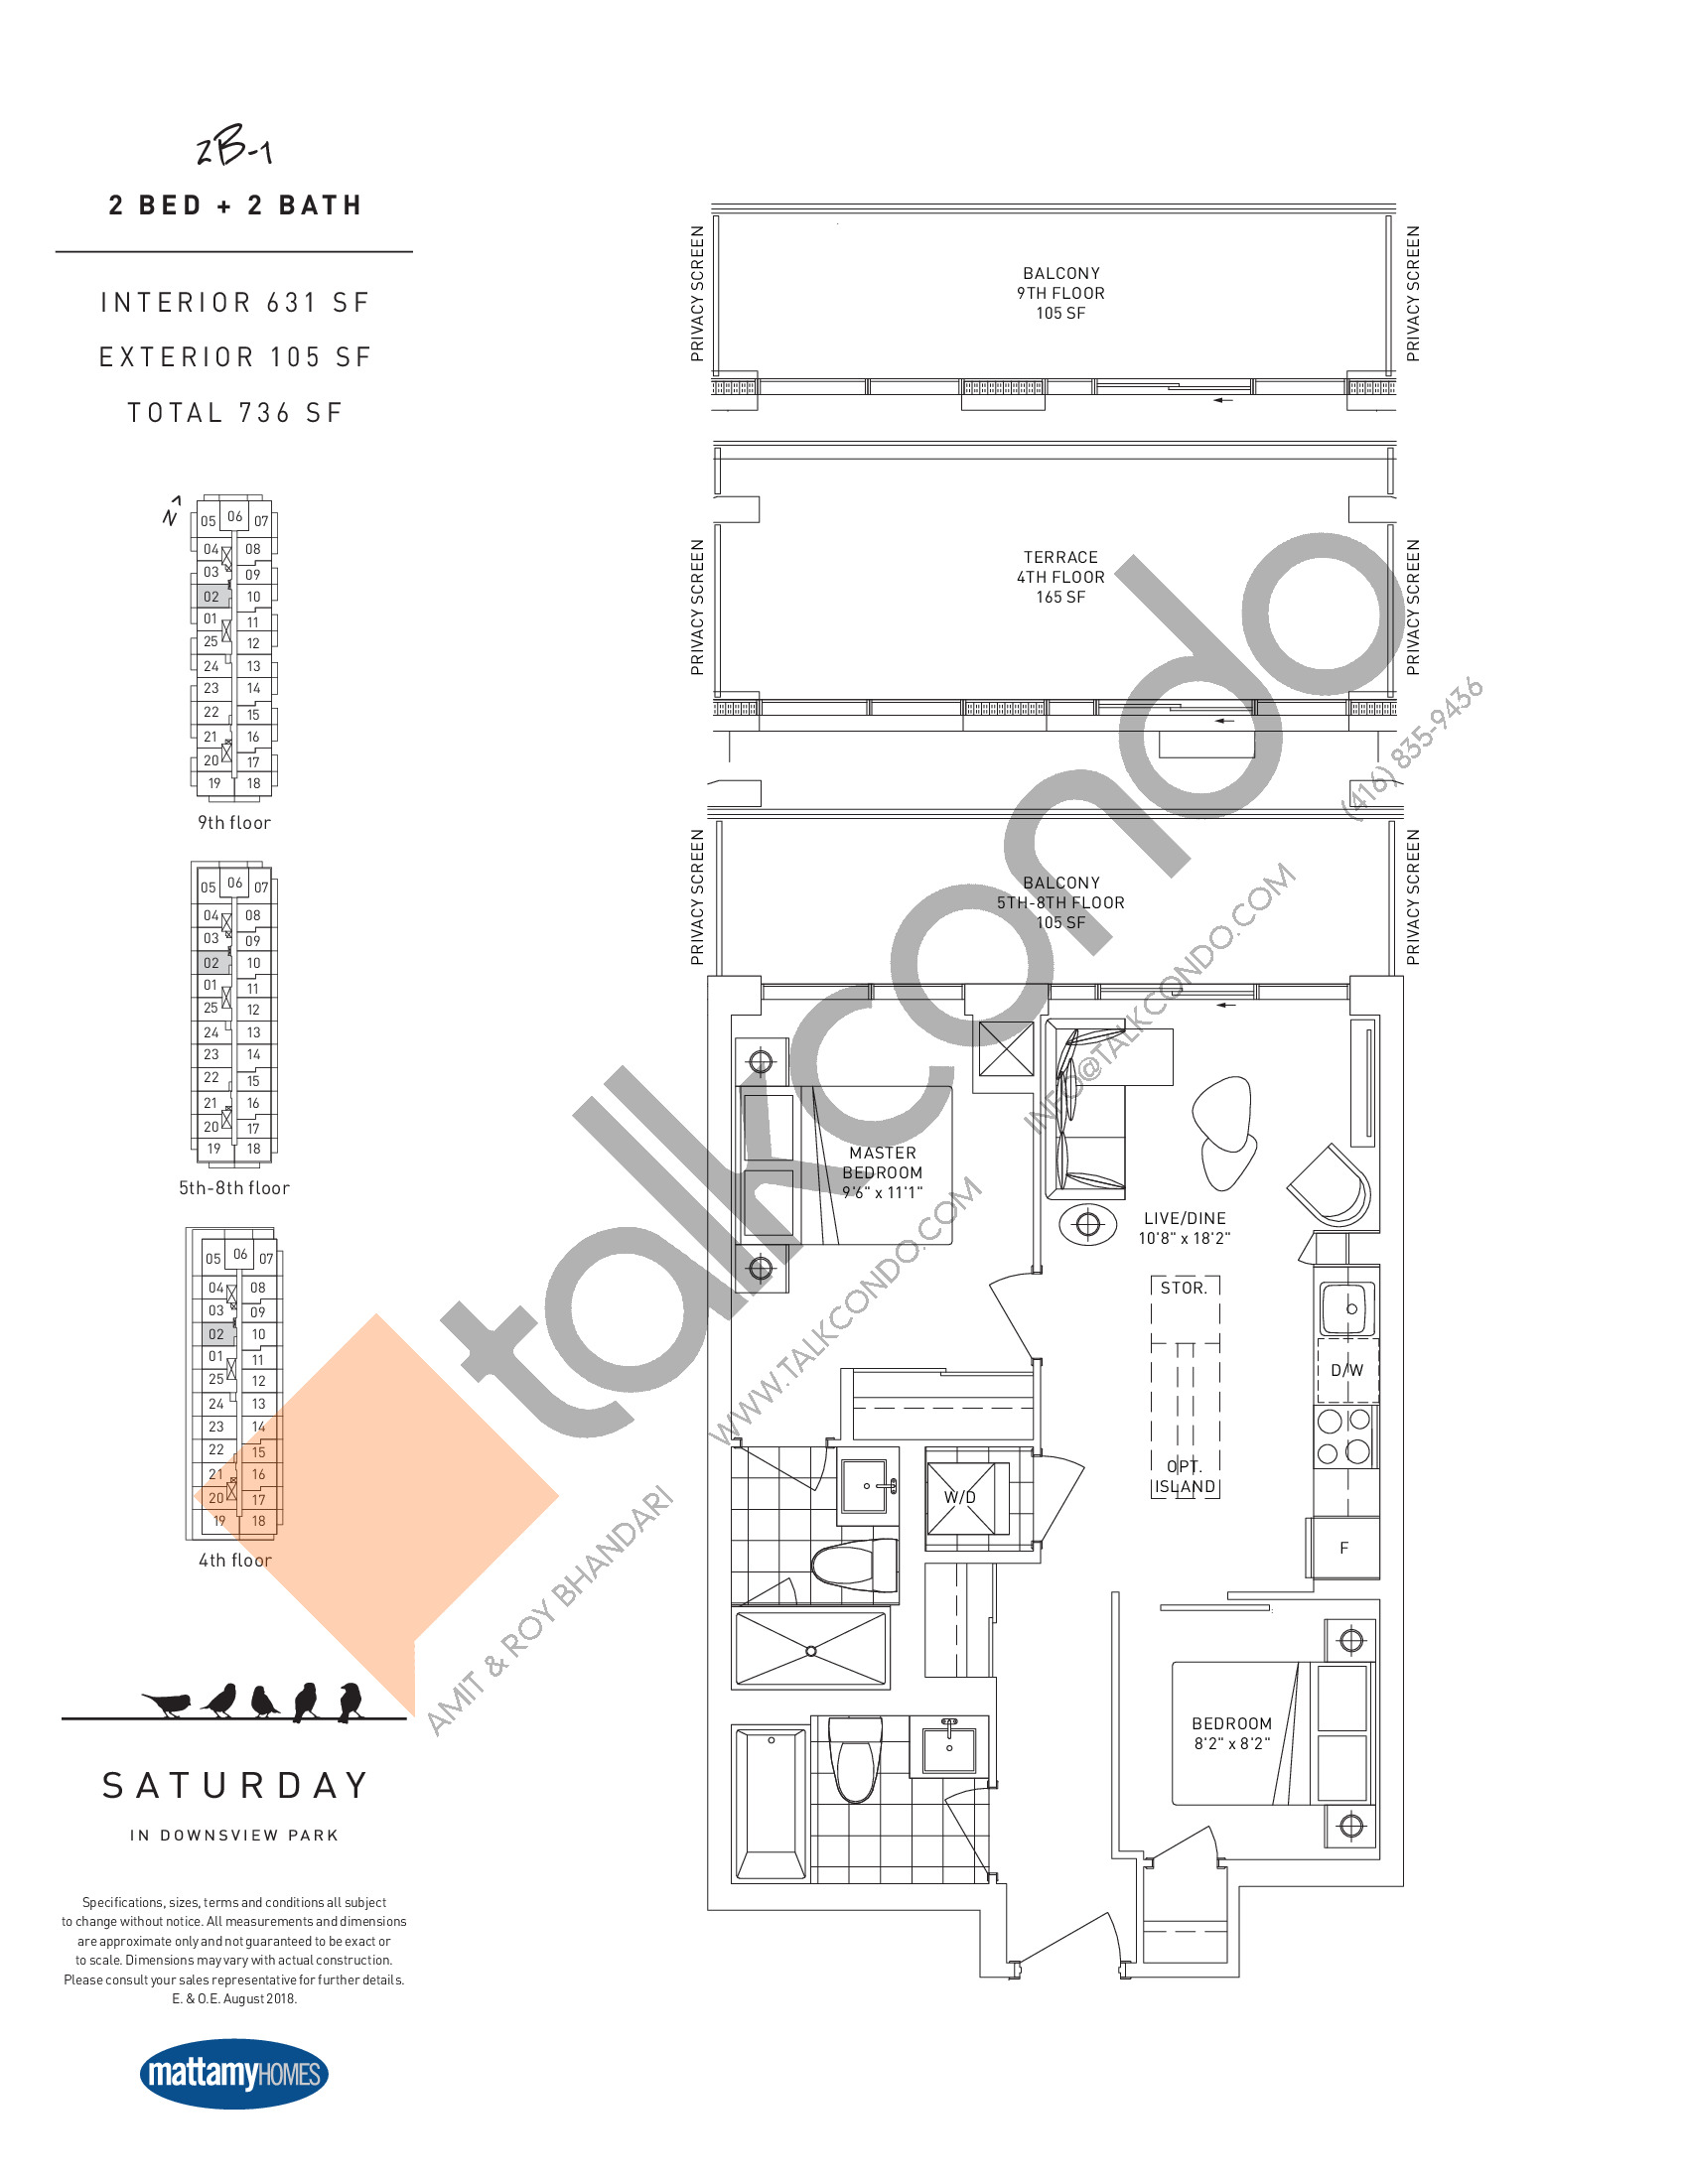 2B-1 Floor Plan at Saturday in Downsview Park Condos - 631 sq.ft